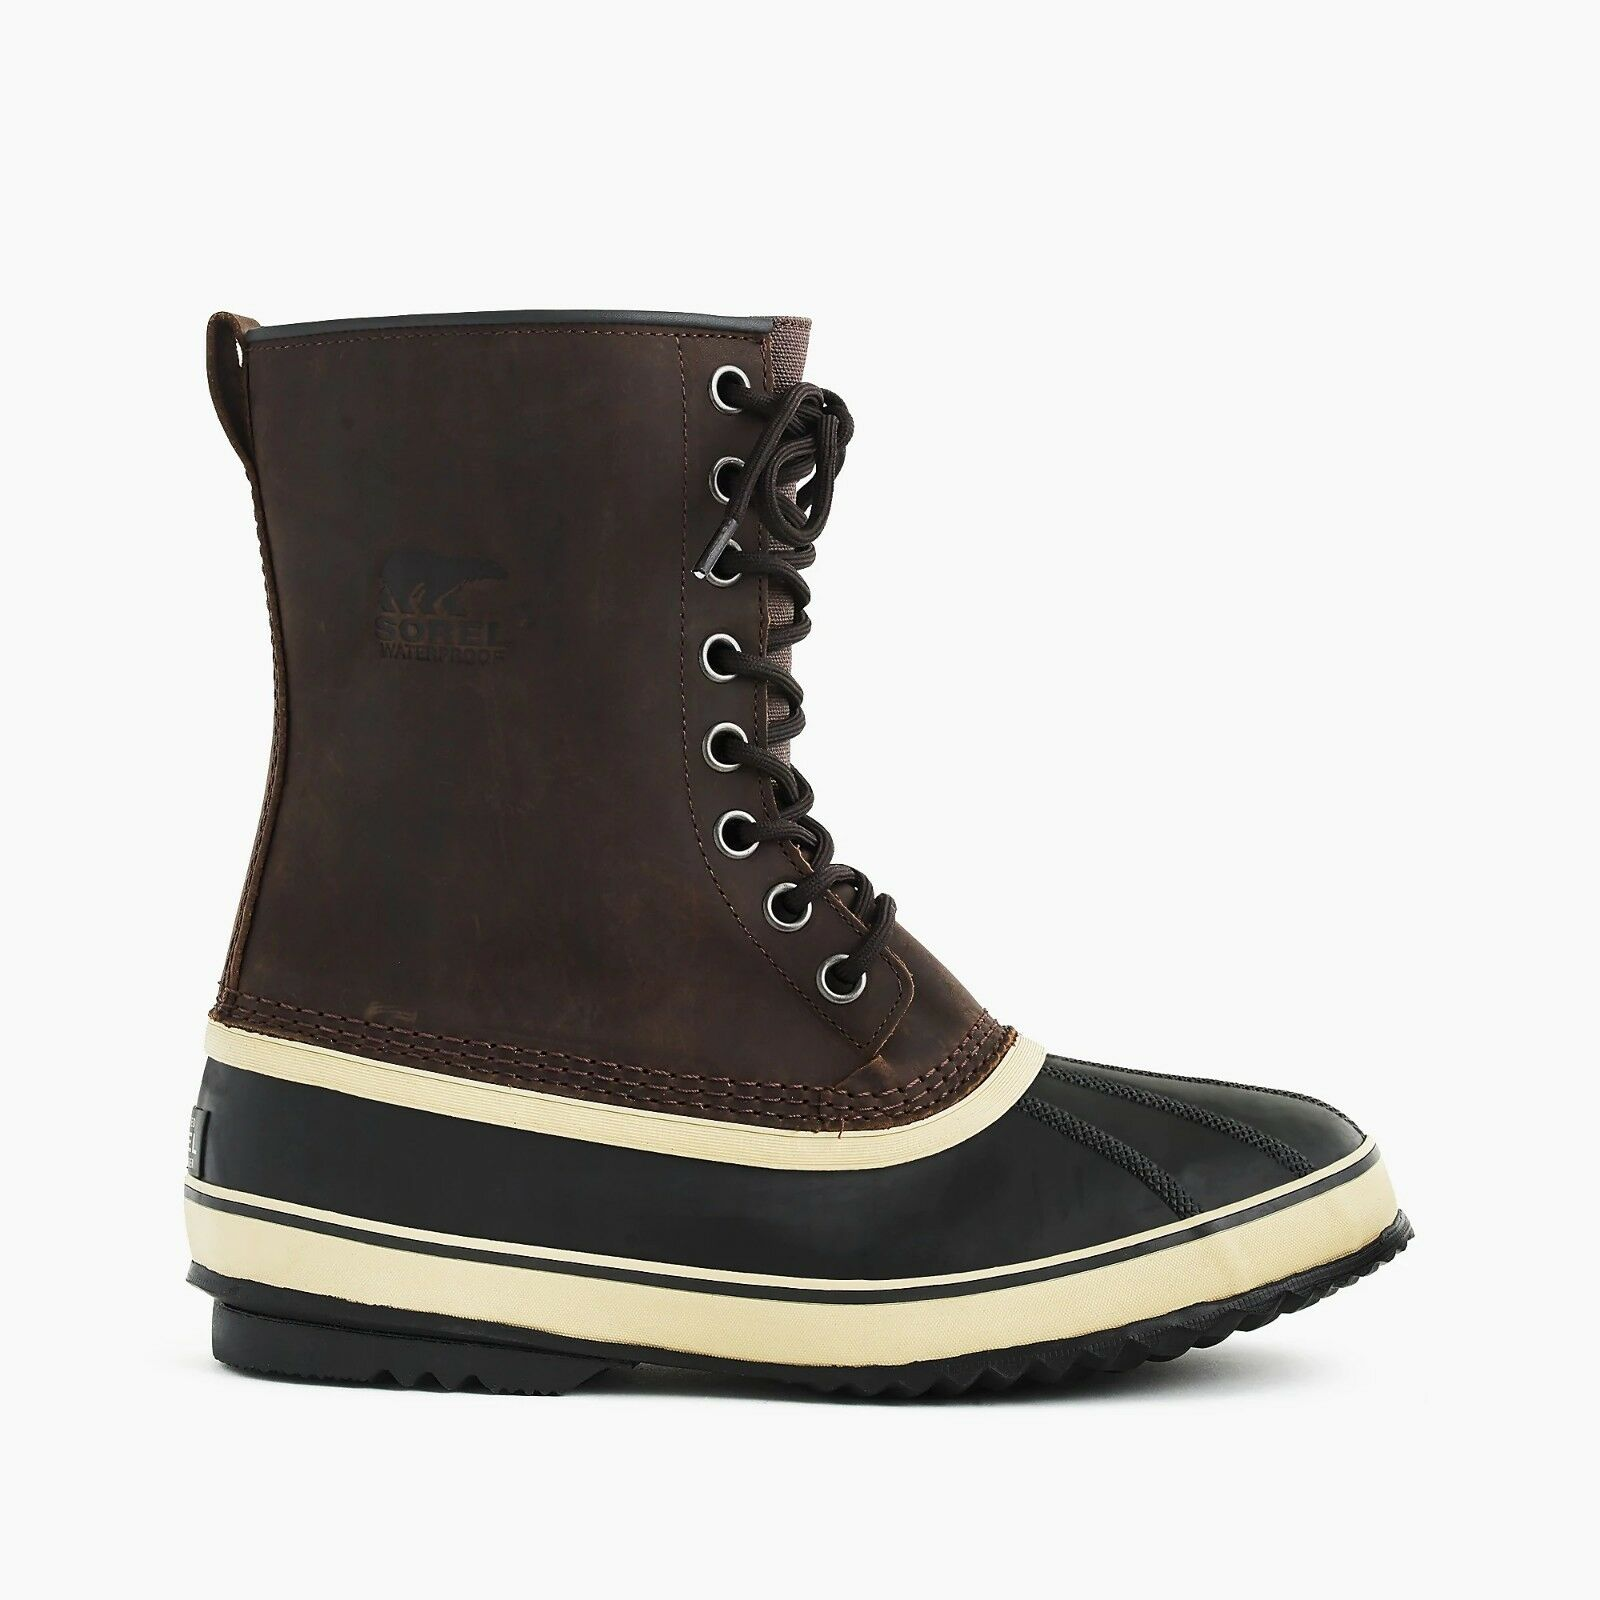 Men's 1964 premium T boots In Brown Size 8, Fit like a 9 - JCrew Edition